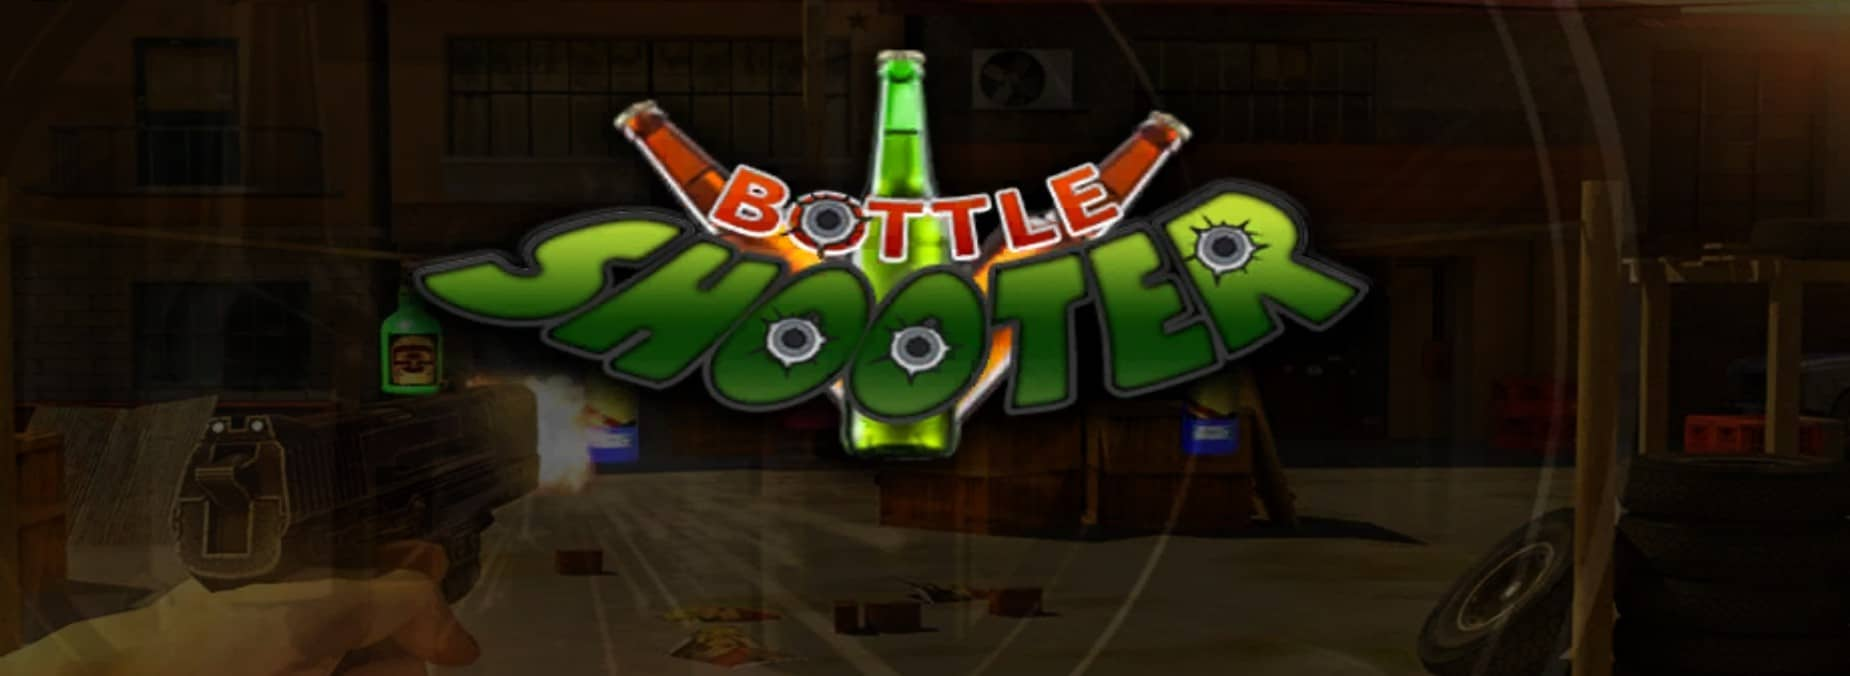 Download Real Bottle Shooter Game APK – for Android 5